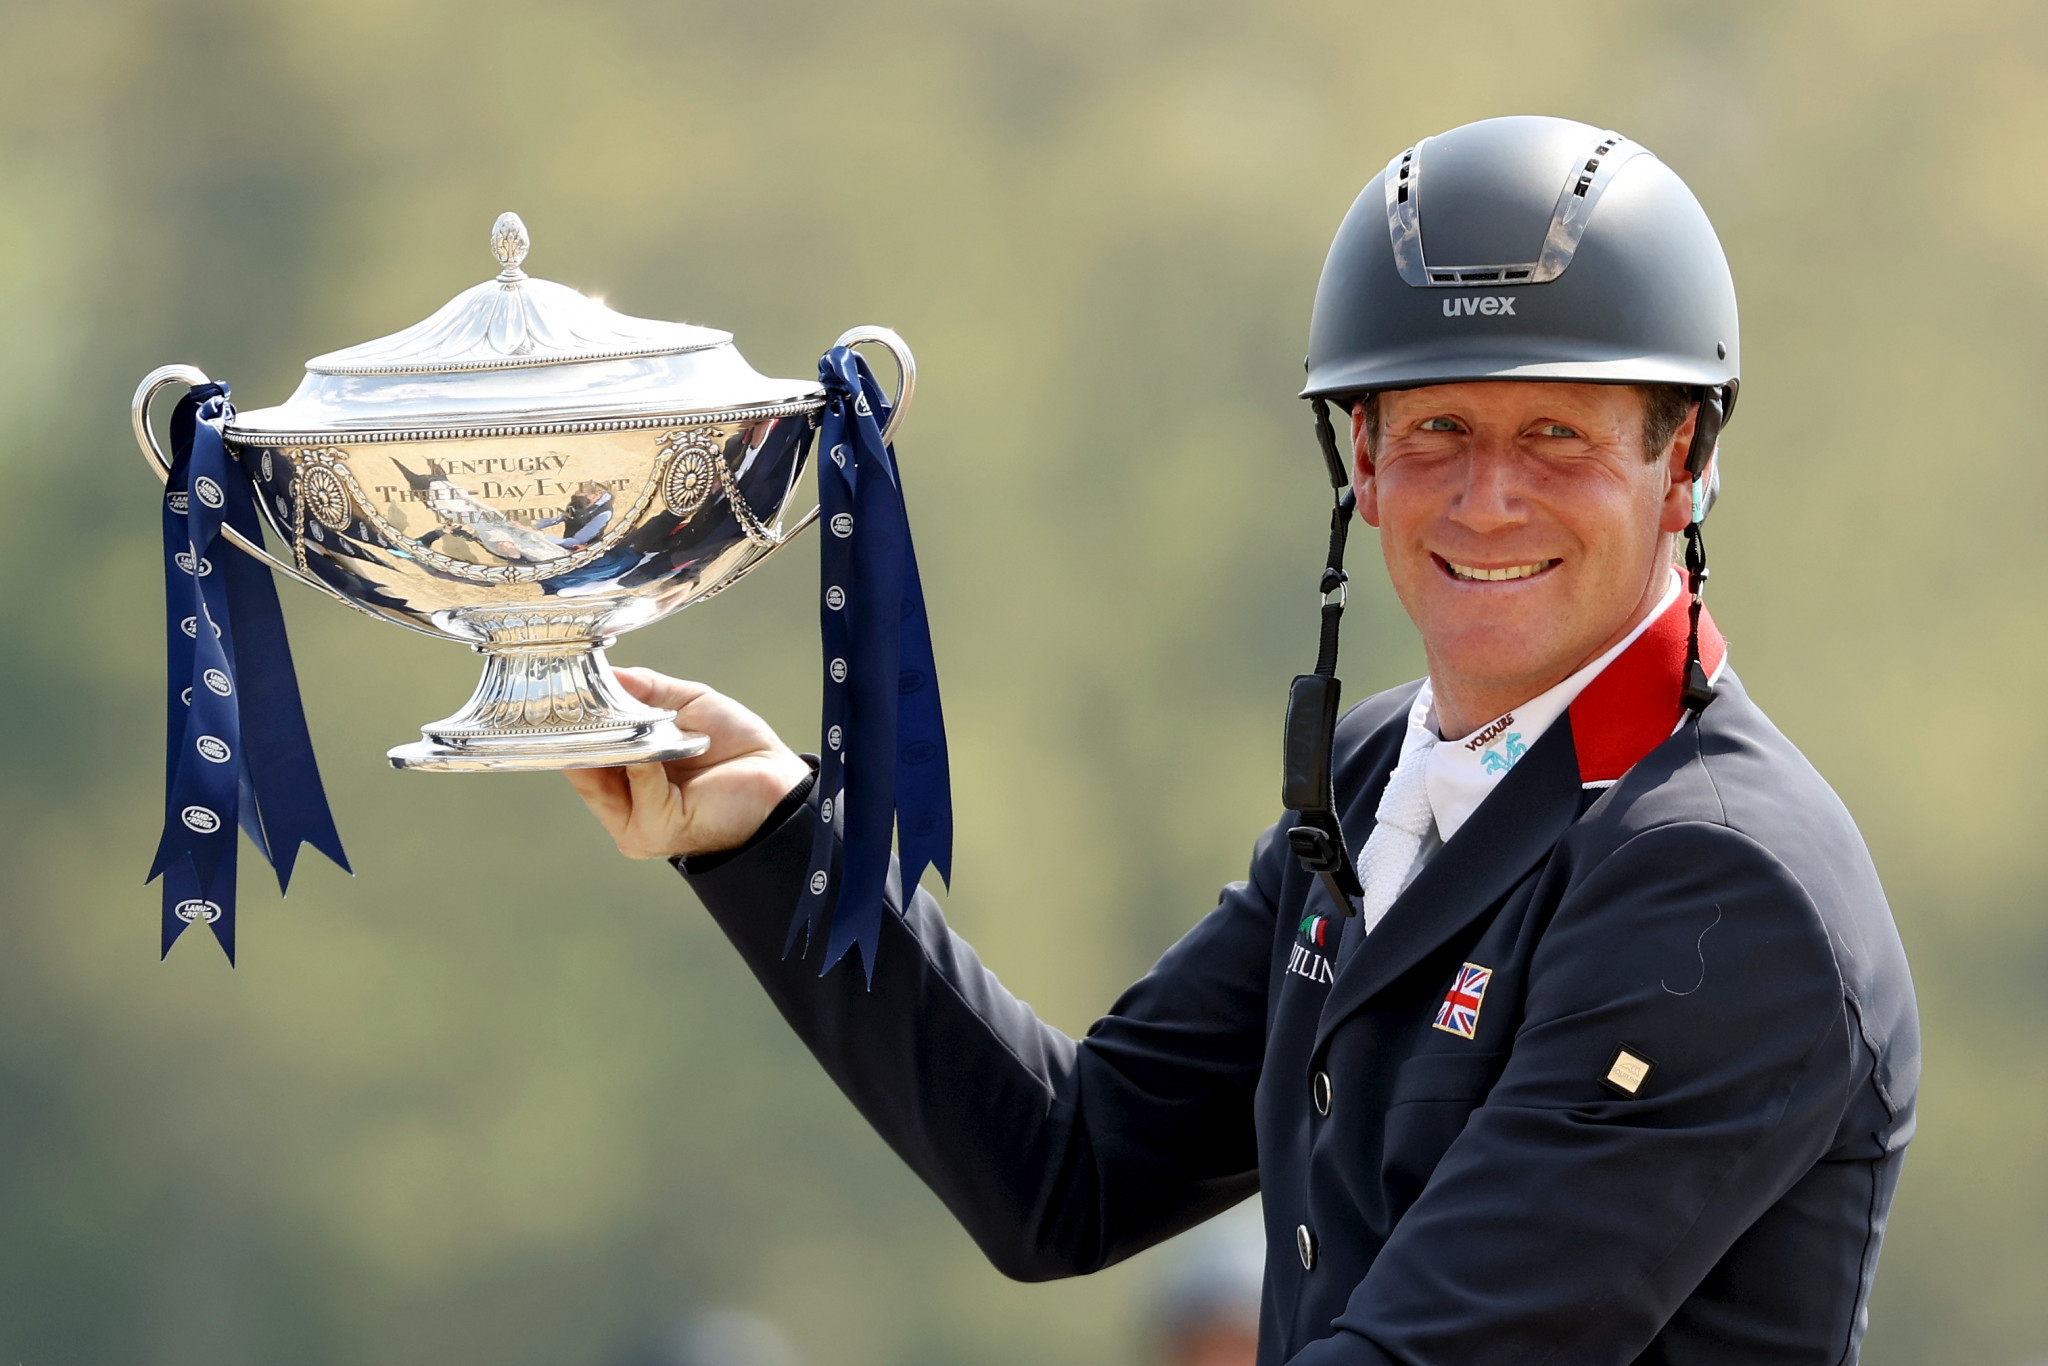 Townend earns third consecutive title at Kentucky Three-Day Event